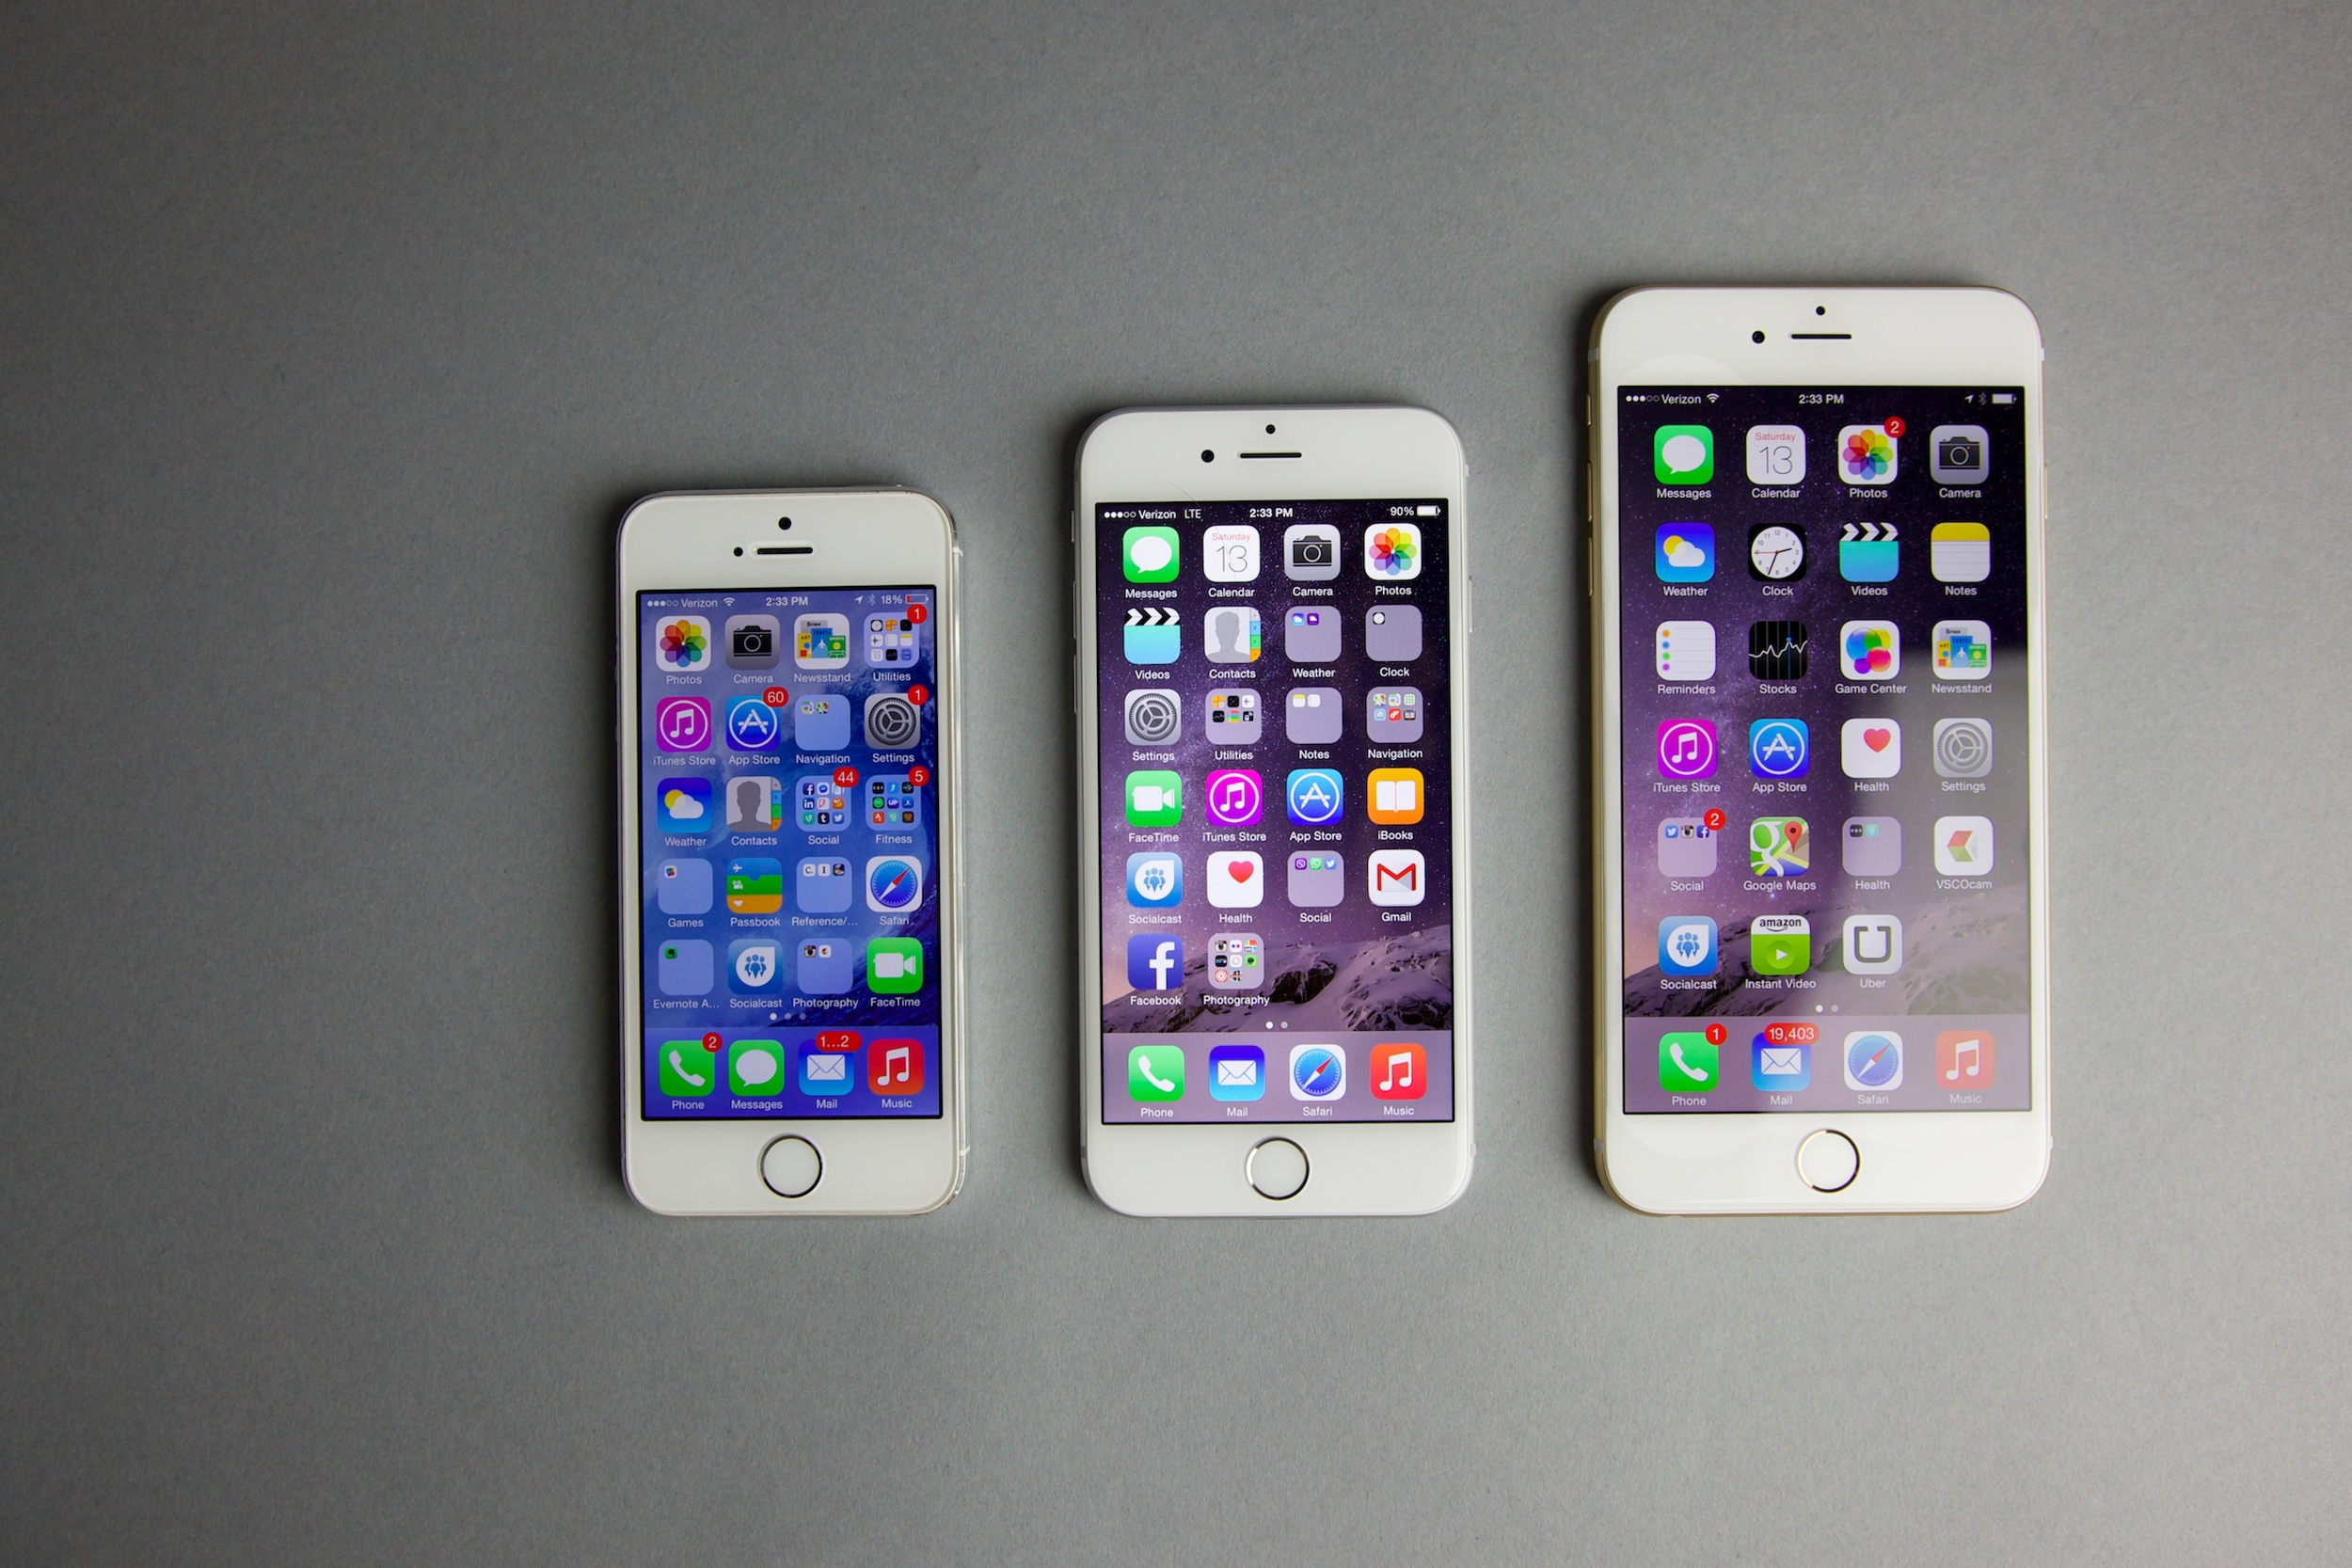 Left to right: iPhone 5S, iPhone 6, iPhone 6 plus